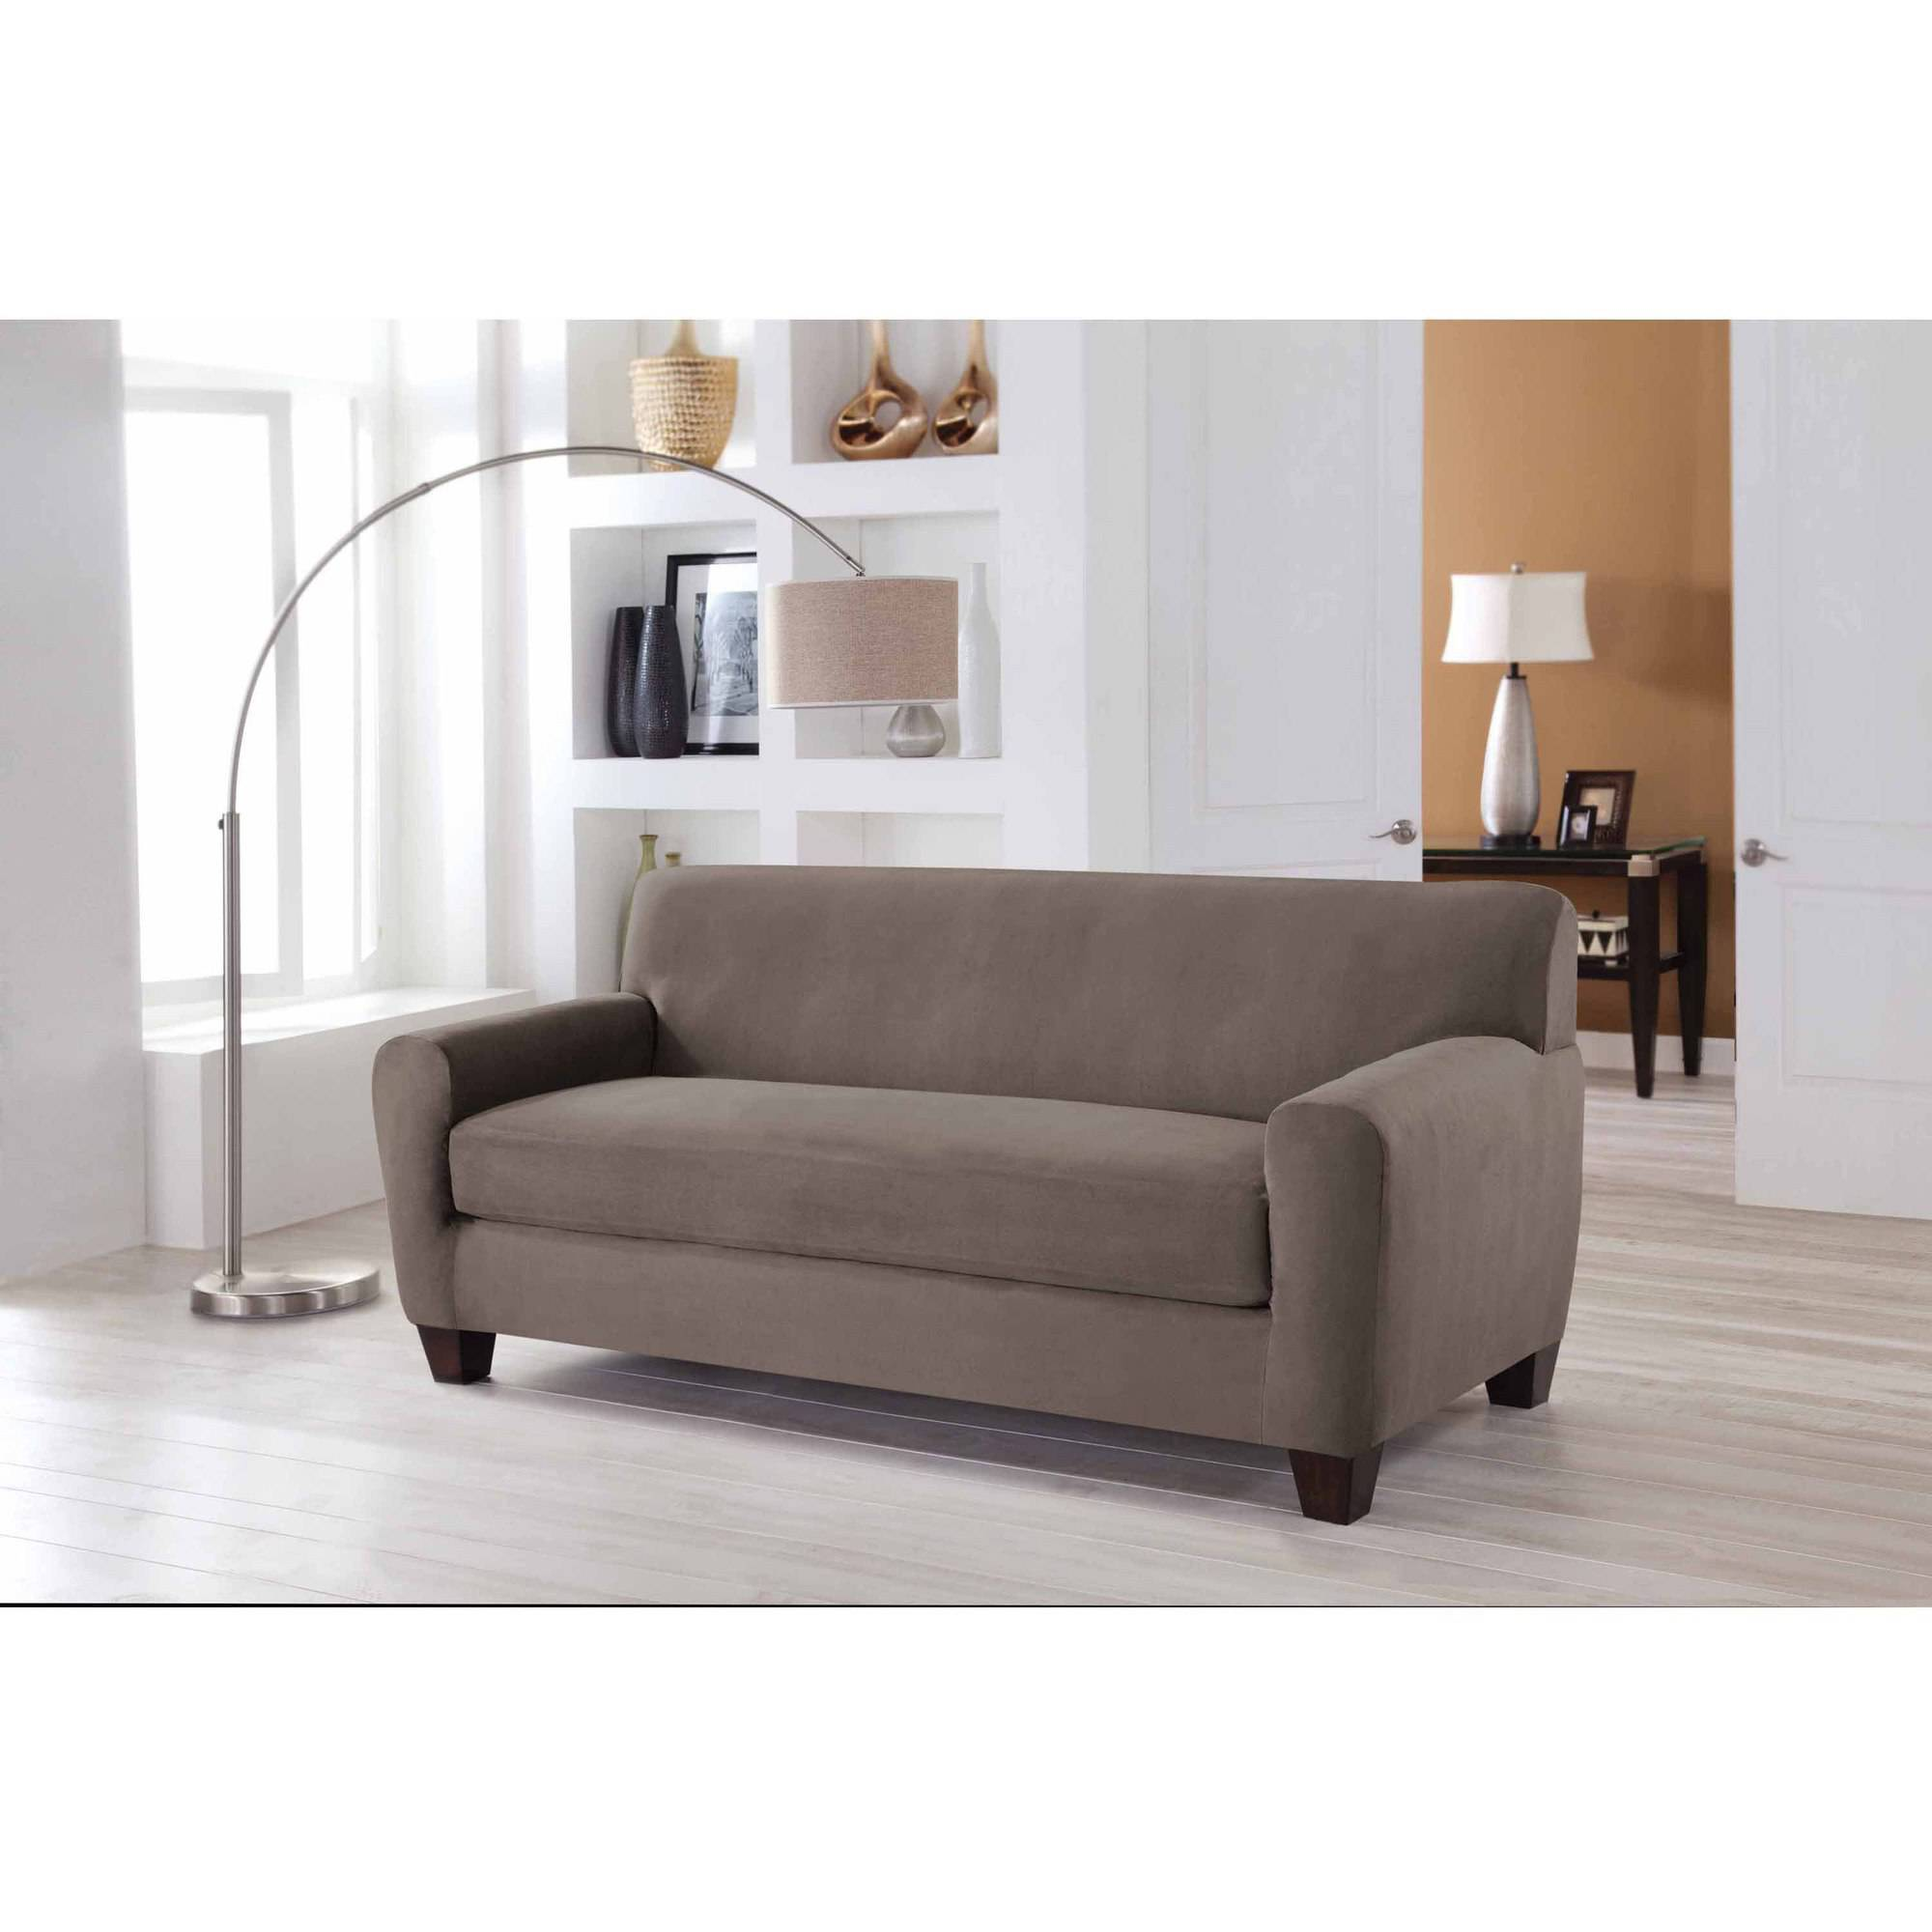 Serta Stretch Fit Microsuede Slipcover Sofa 2 Piece Box Cushion